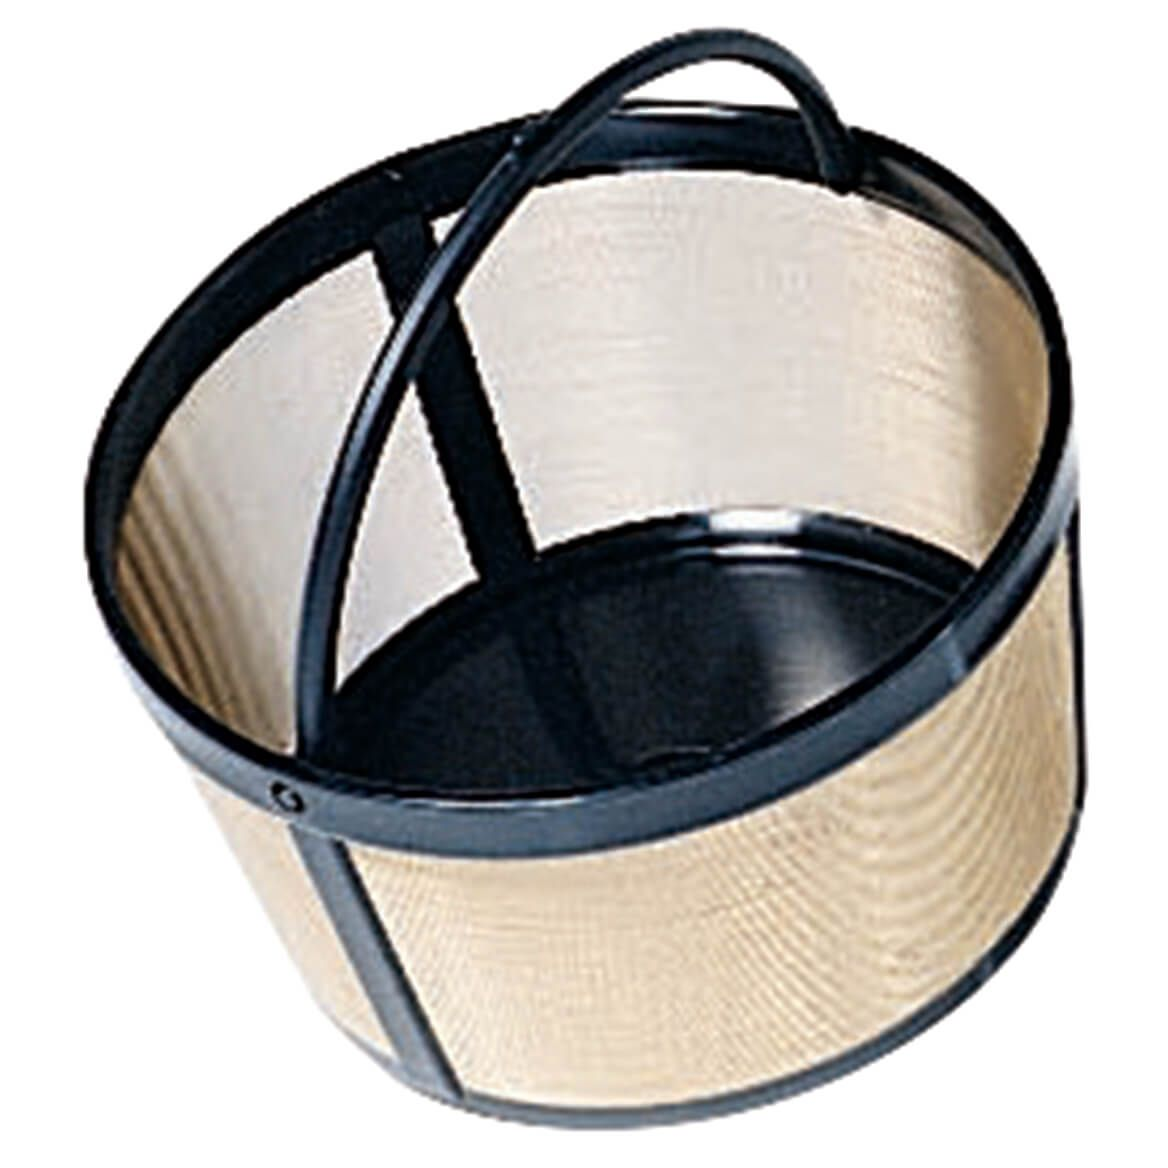 Universal Coffee Filter, 4-Cup Basket-303763